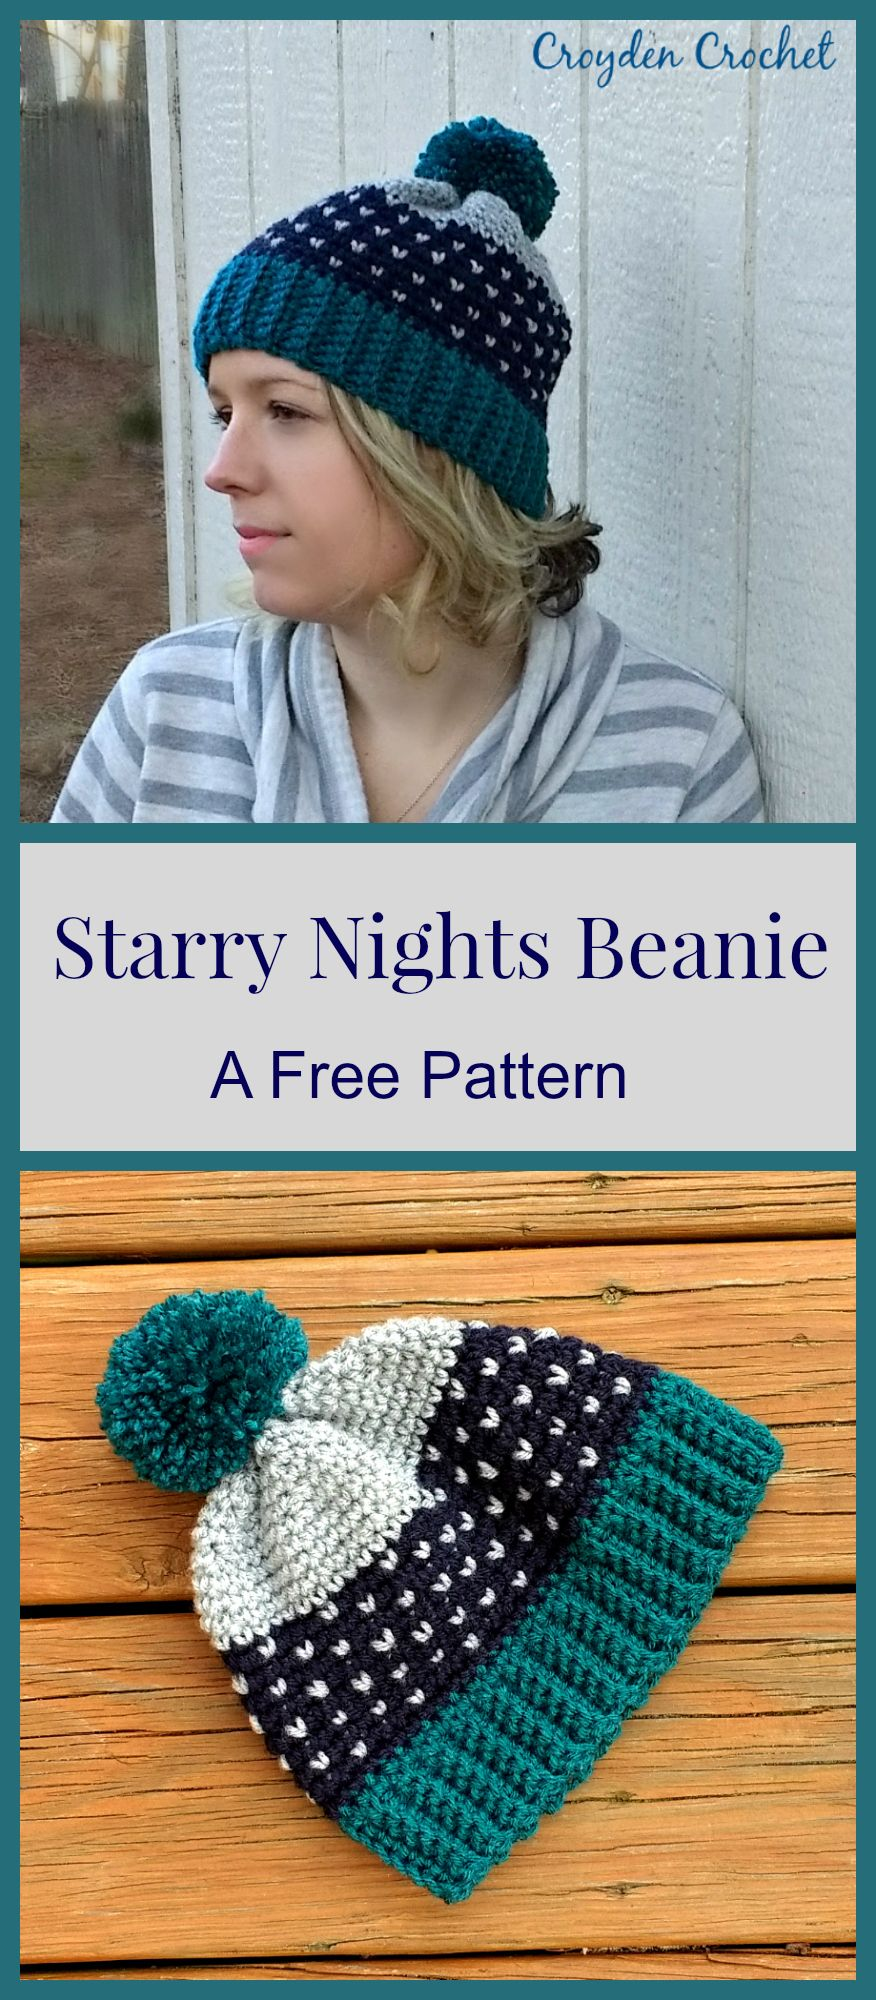 Starry Nights Beanie - Croyden Crochet - (free pattern) | Mütze ...